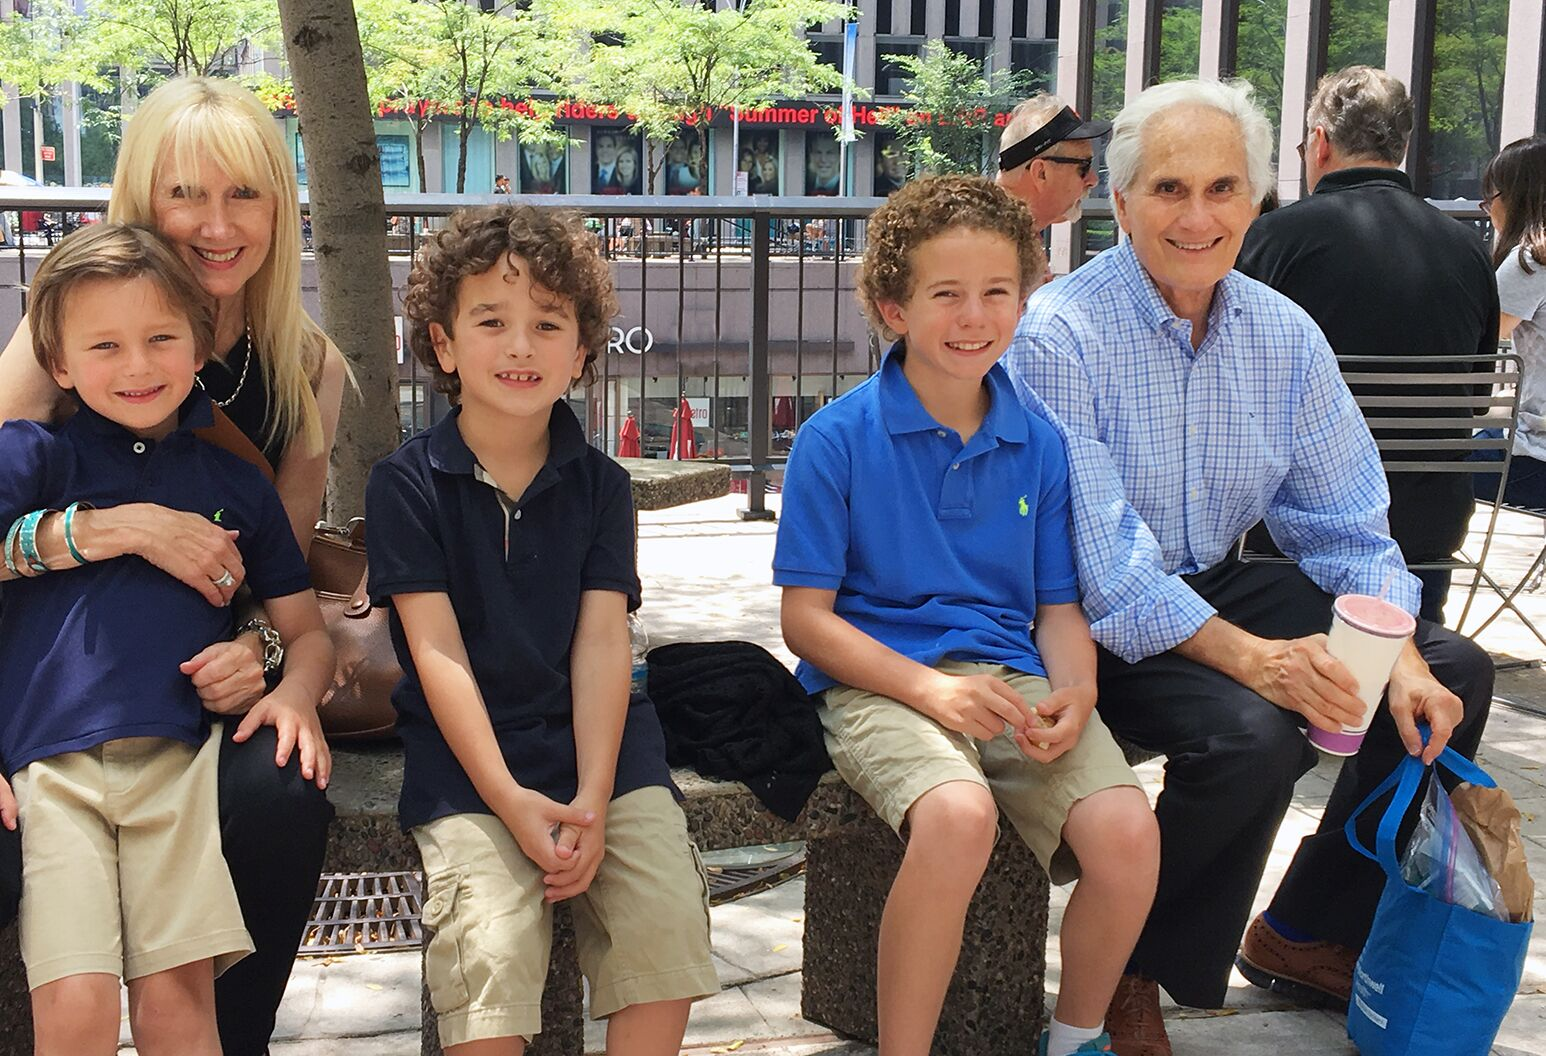 A man and woman in their 70s sit on a bench outside with their three grandsons.